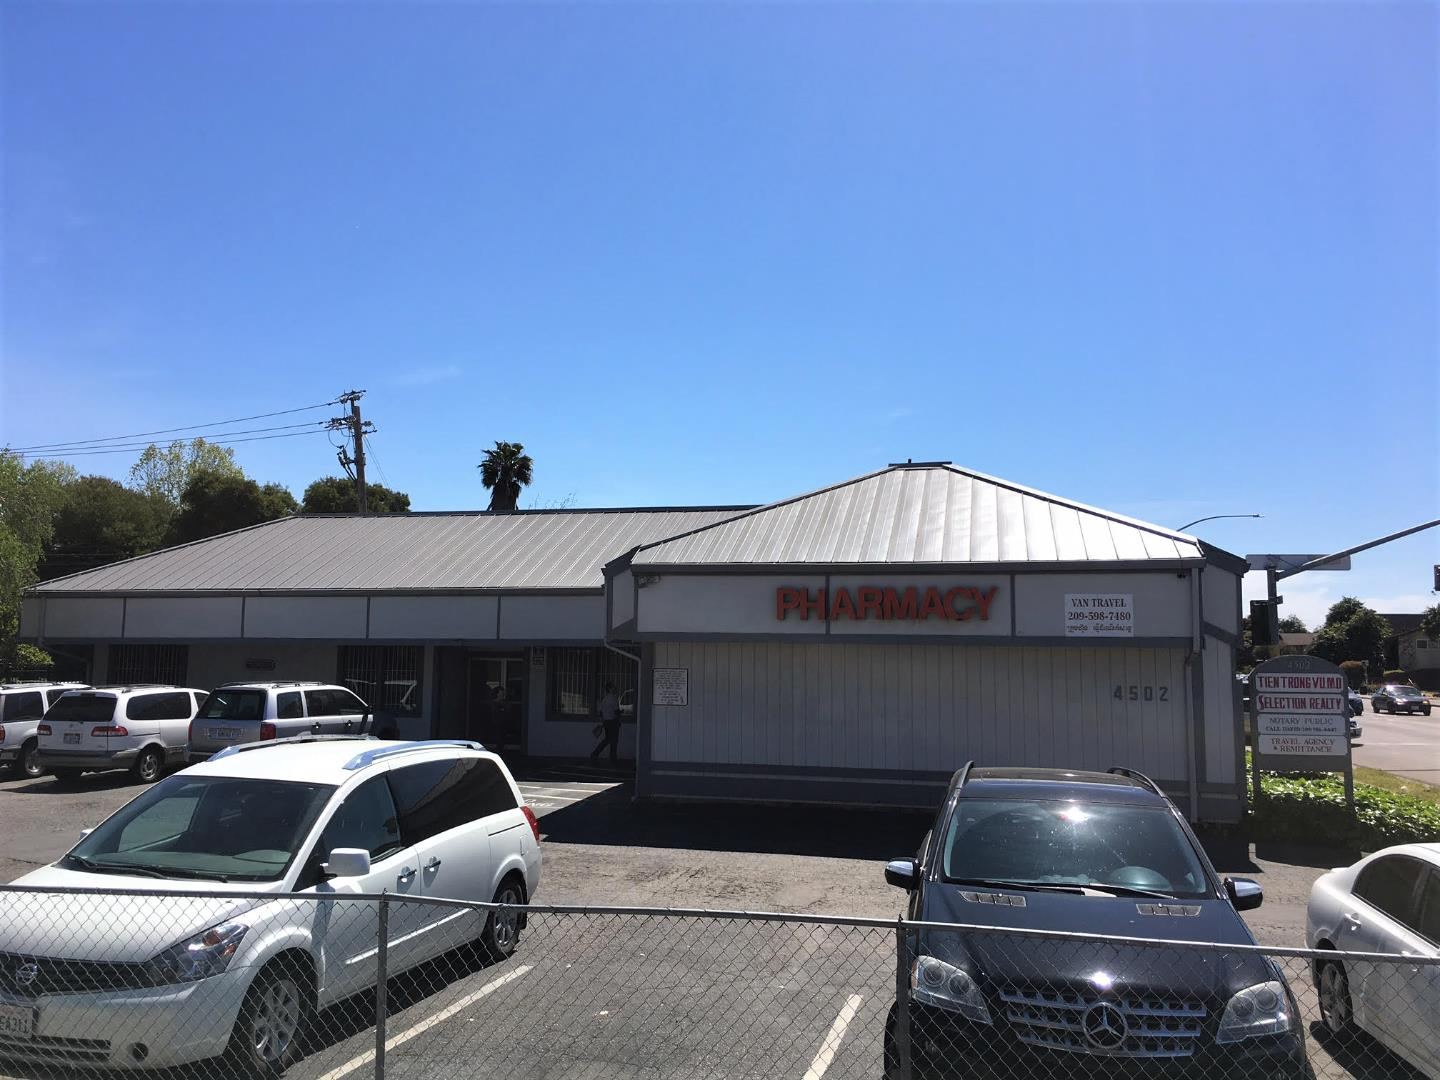 Additional photo for property listing at 4502 N Pershing Avenue 4502 N Pershing Avenue Stockton, Californie 95207 États-Unis